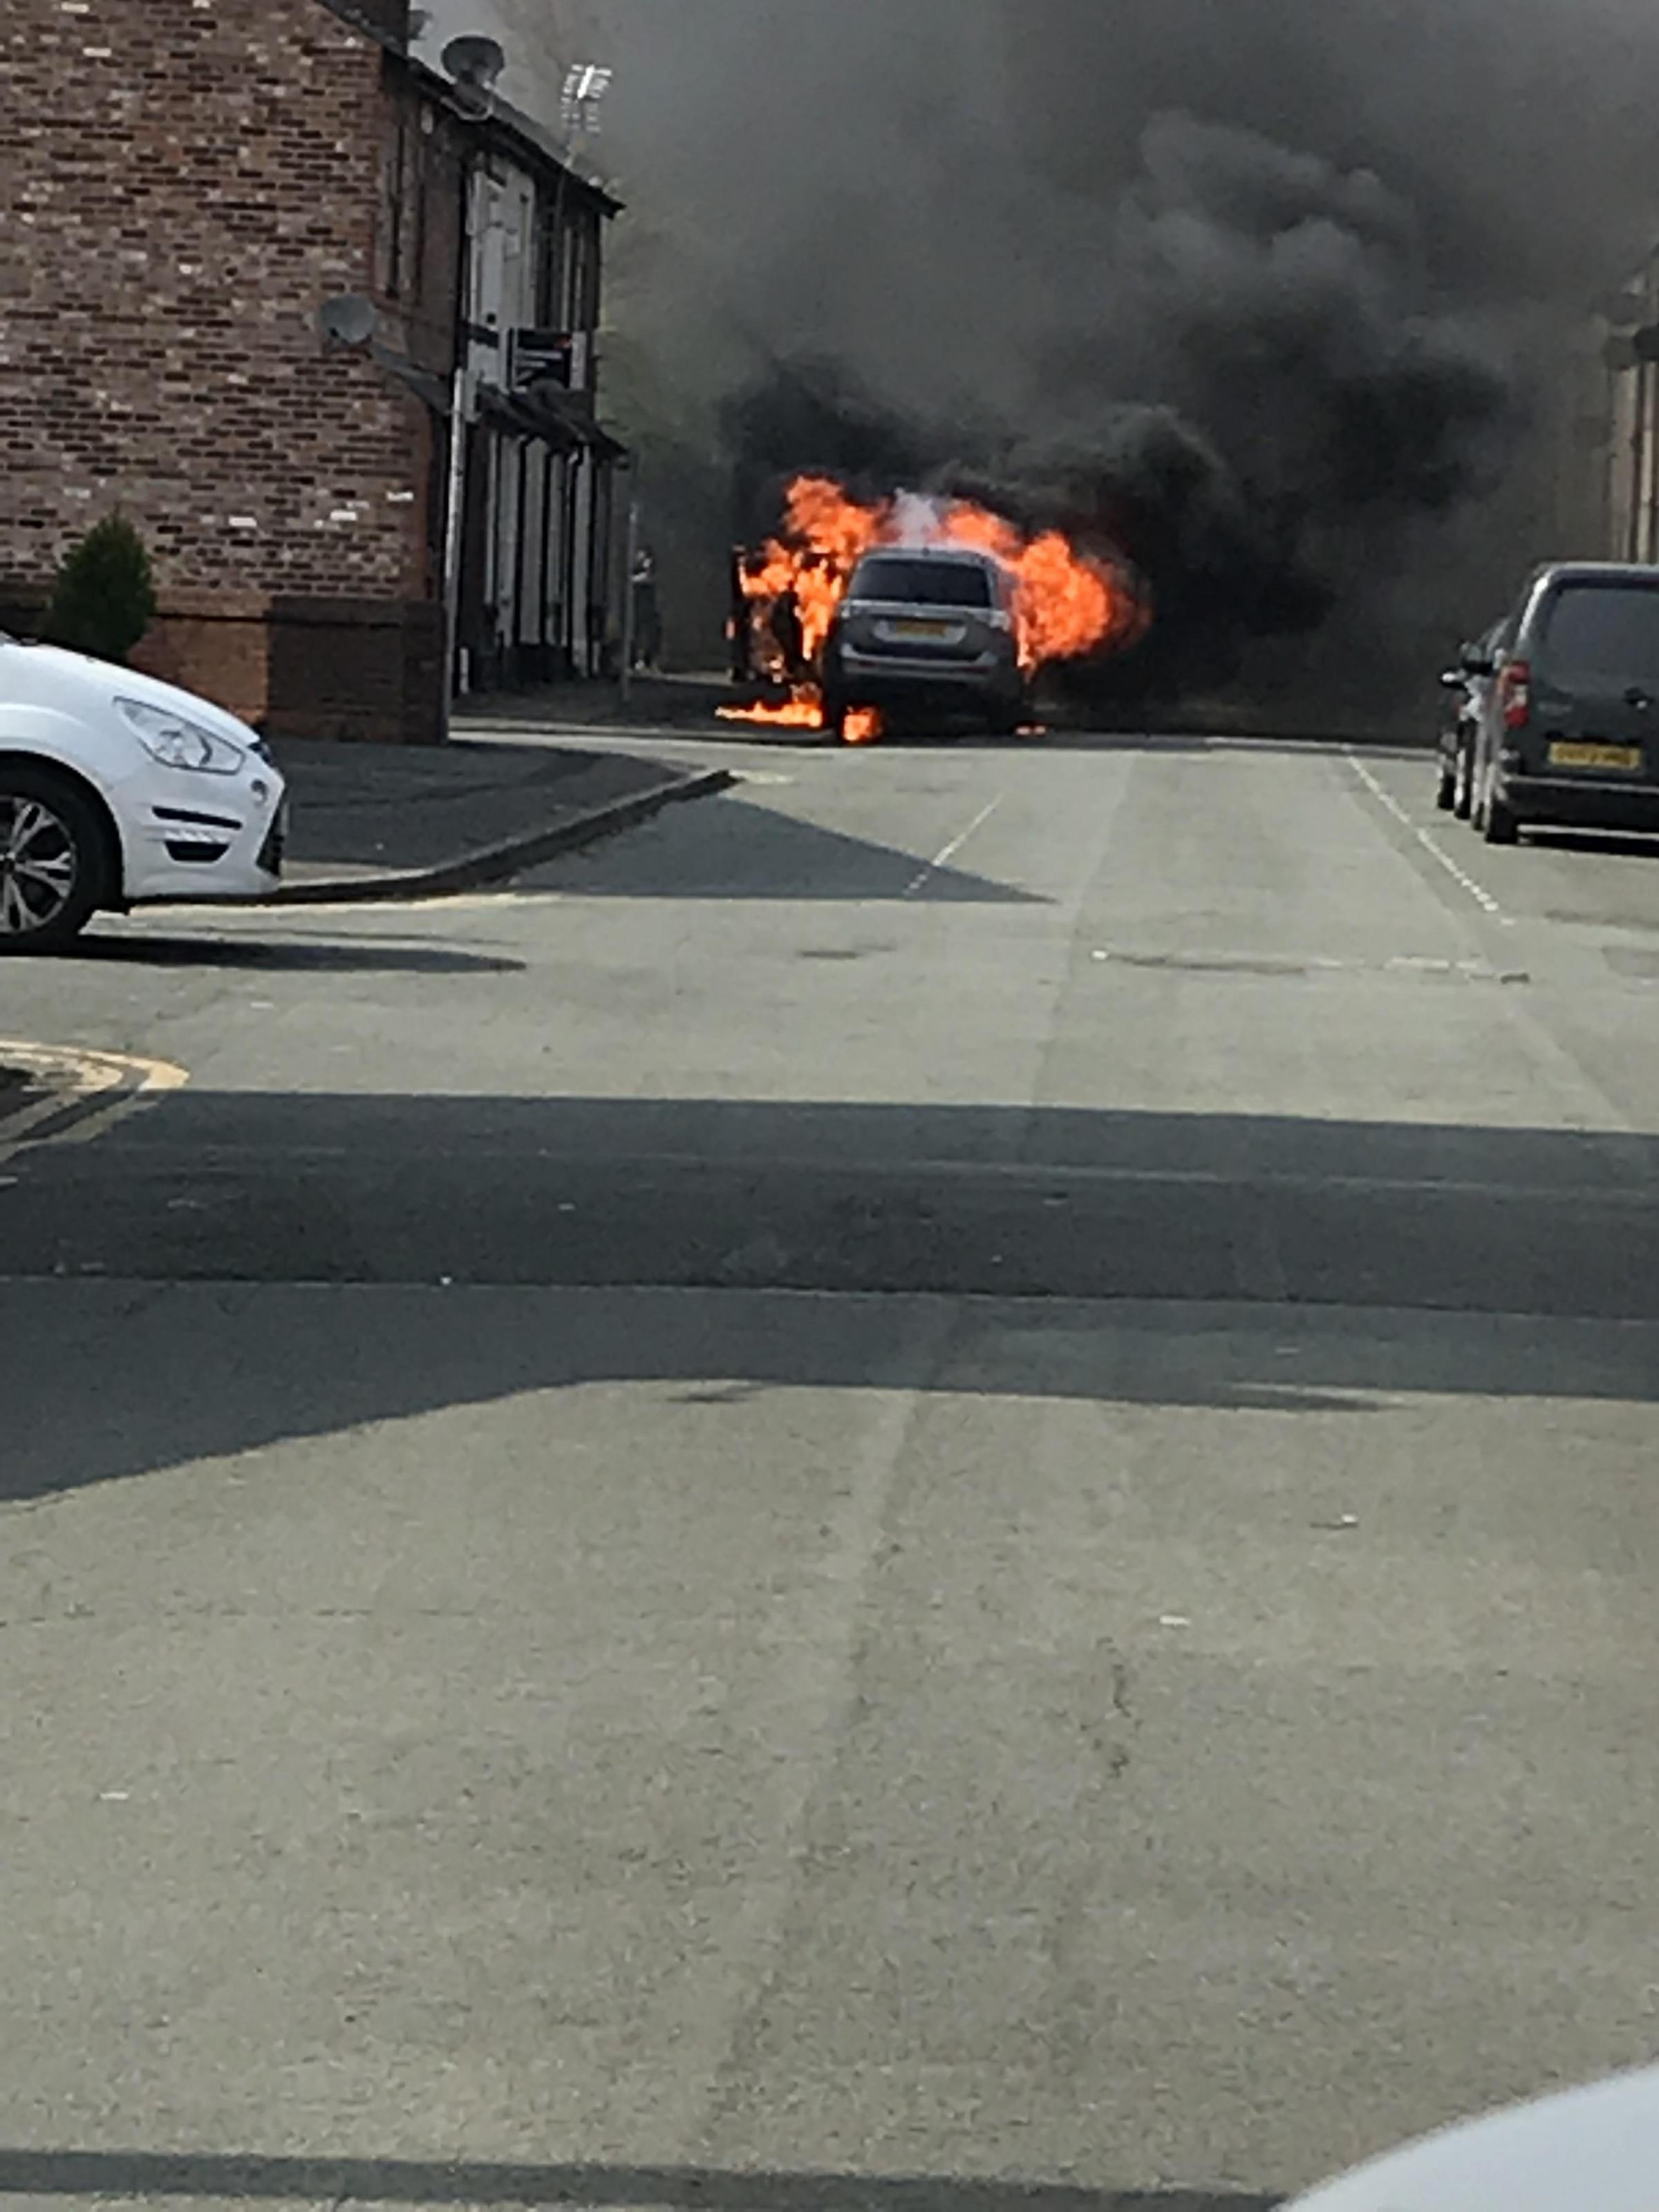 The fire took place on Sharp Street in Warrington